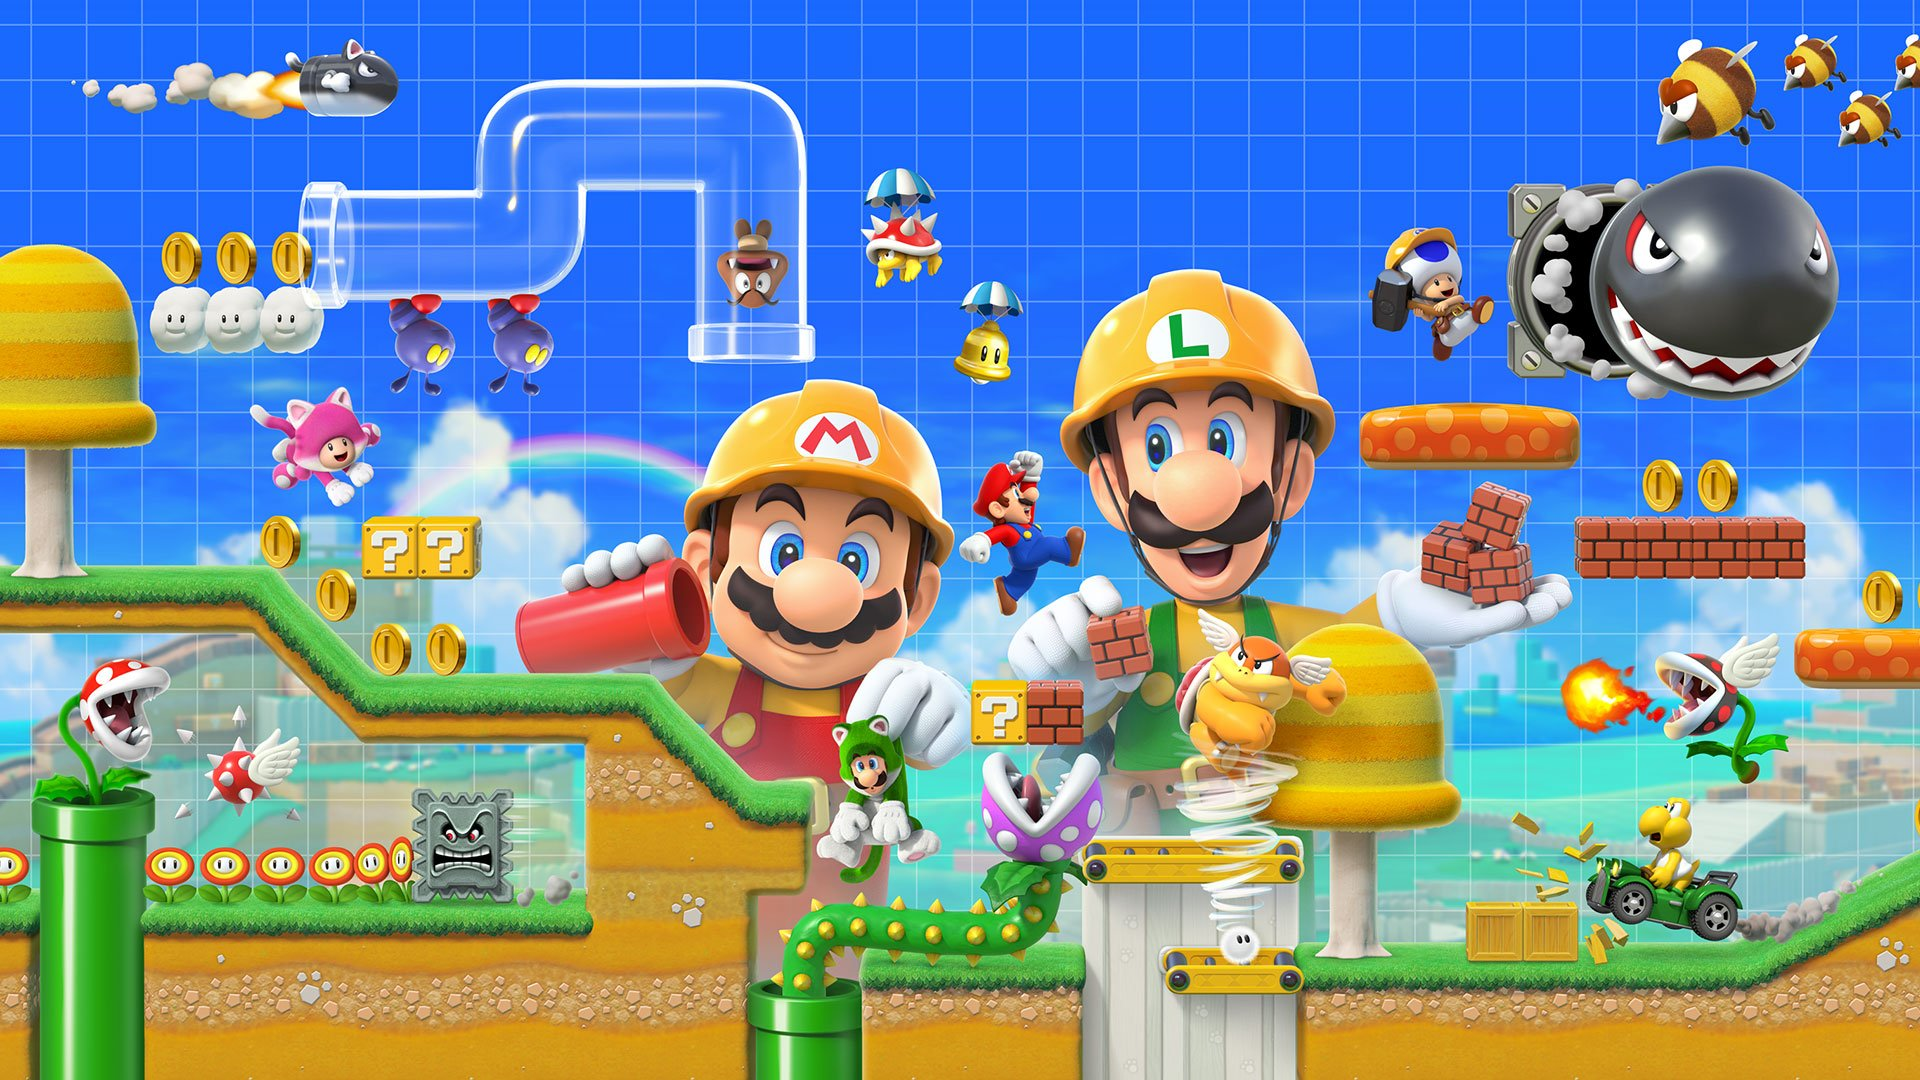 There is no amiibo support available in Super Mario Maker 2 according to Nintendo.